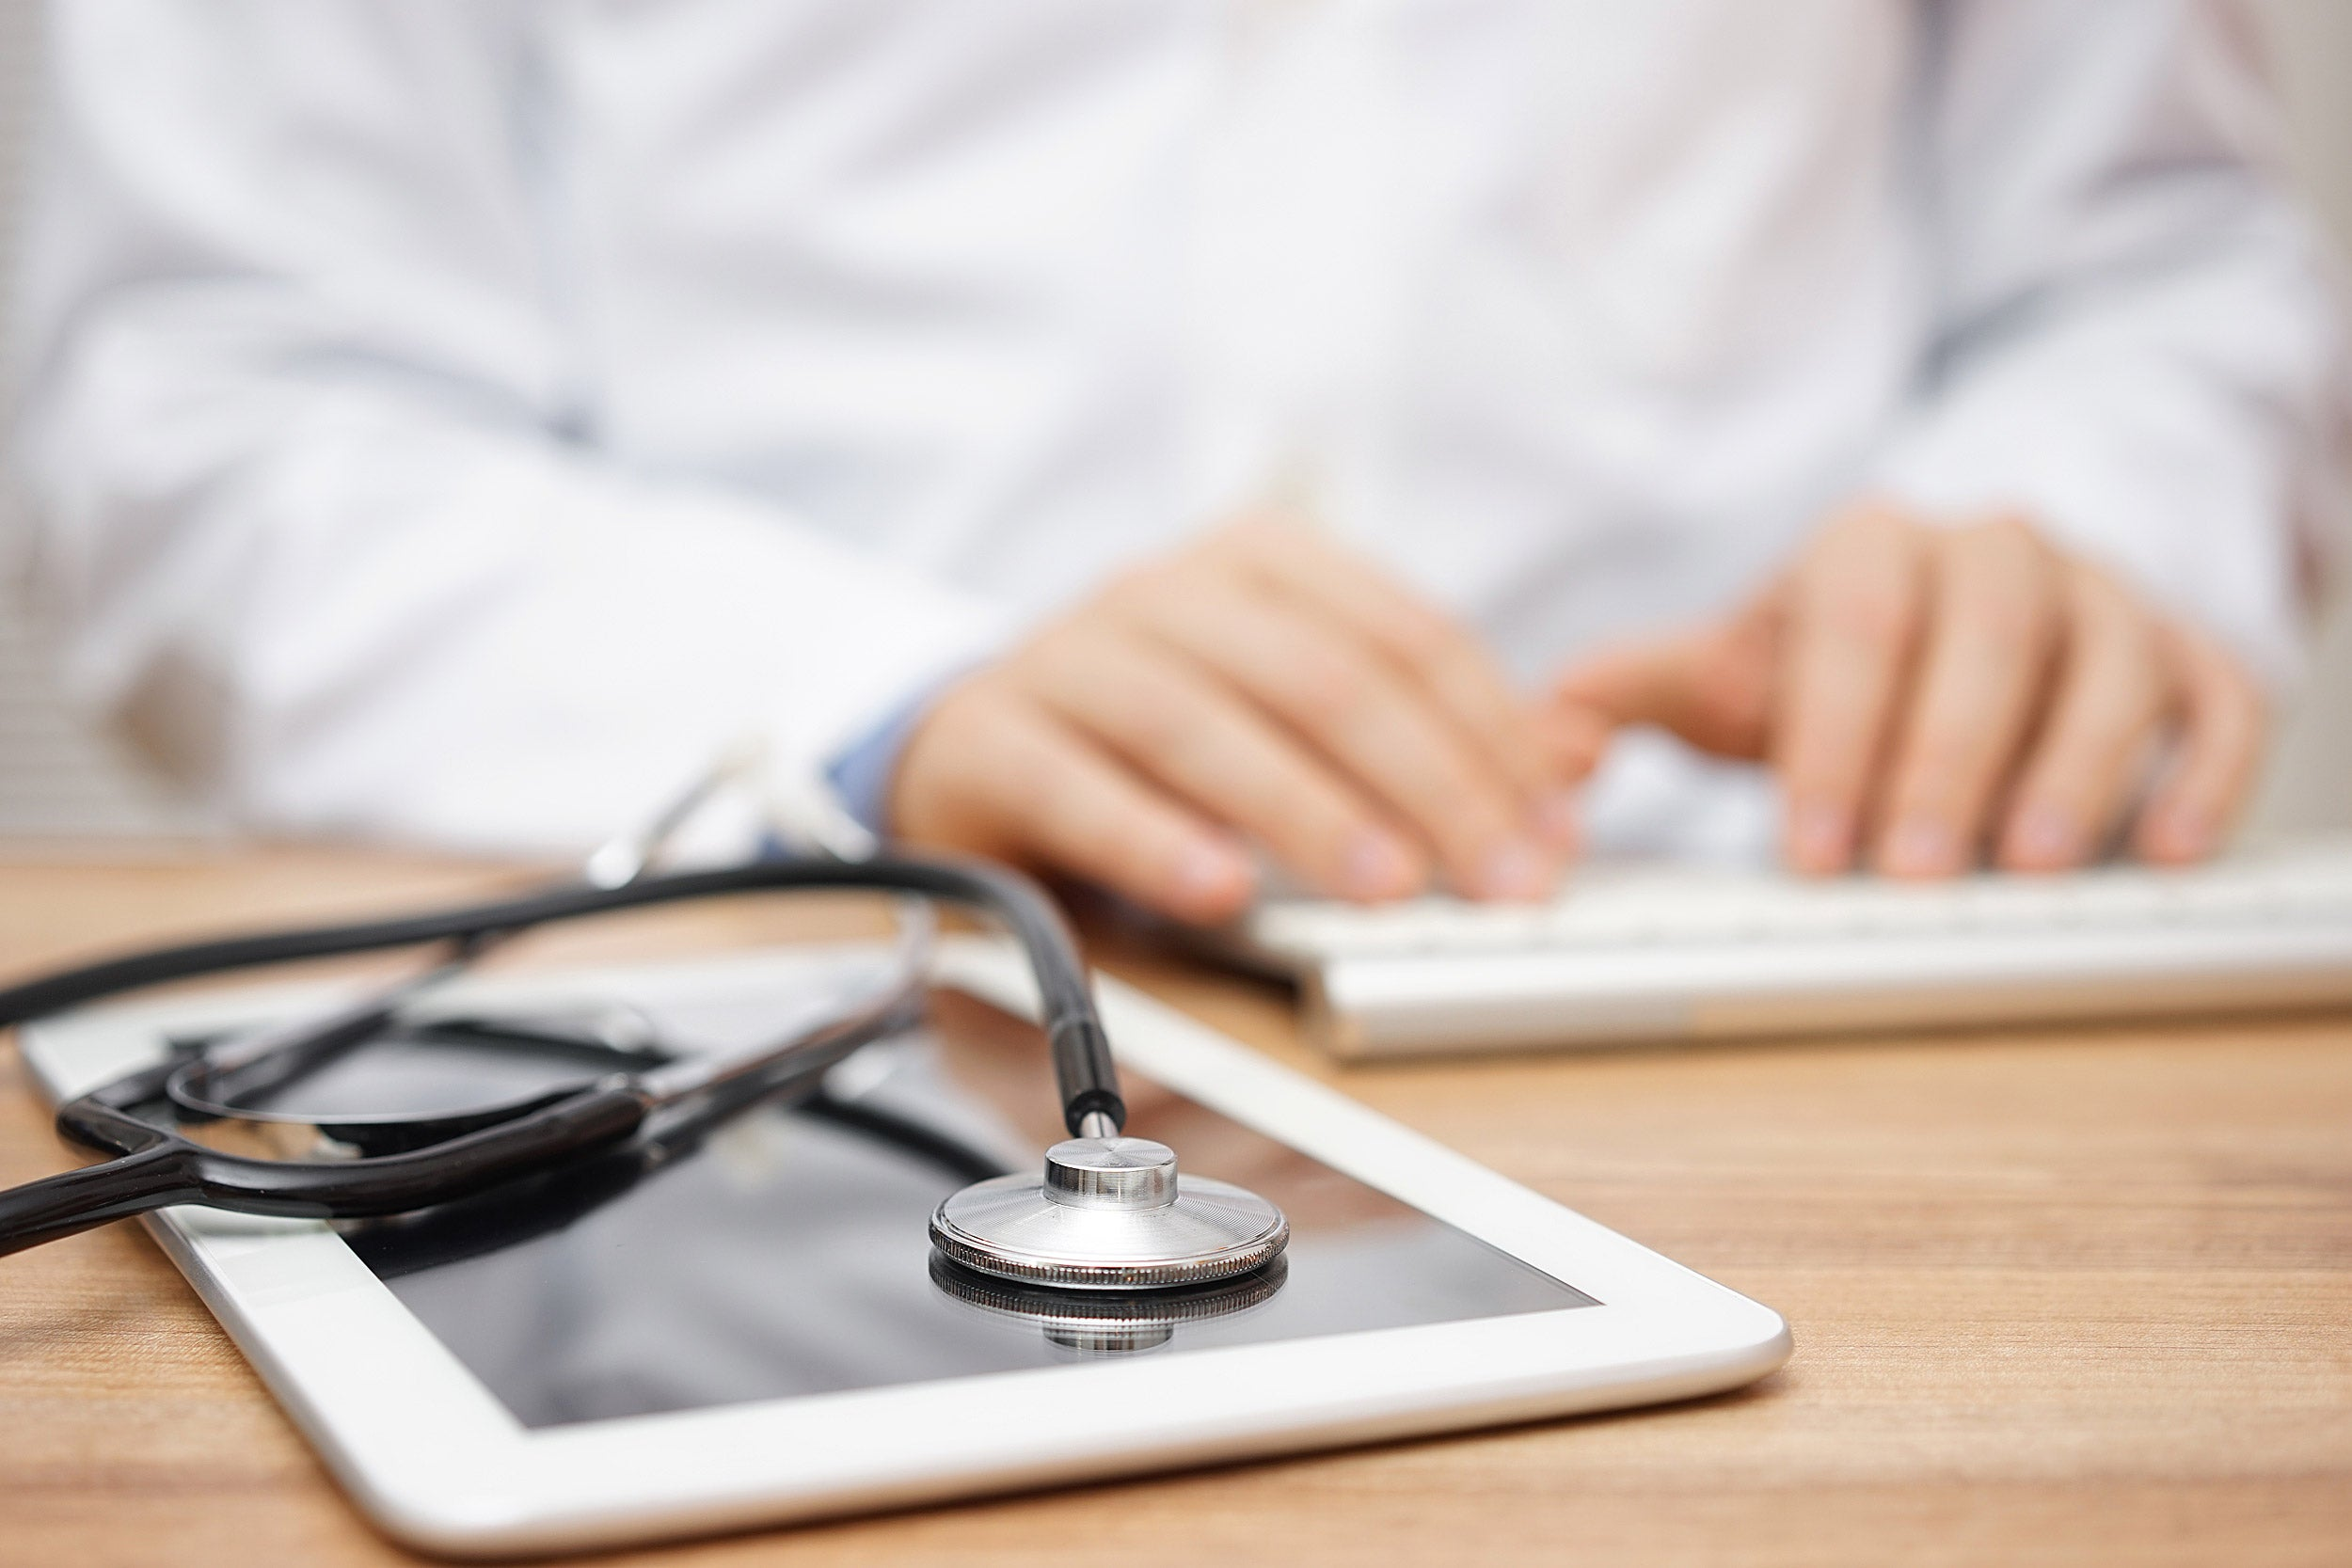 A new study finds that virtual video visits can successfully replace office visits for many patients without compromising the quality of care and communication.